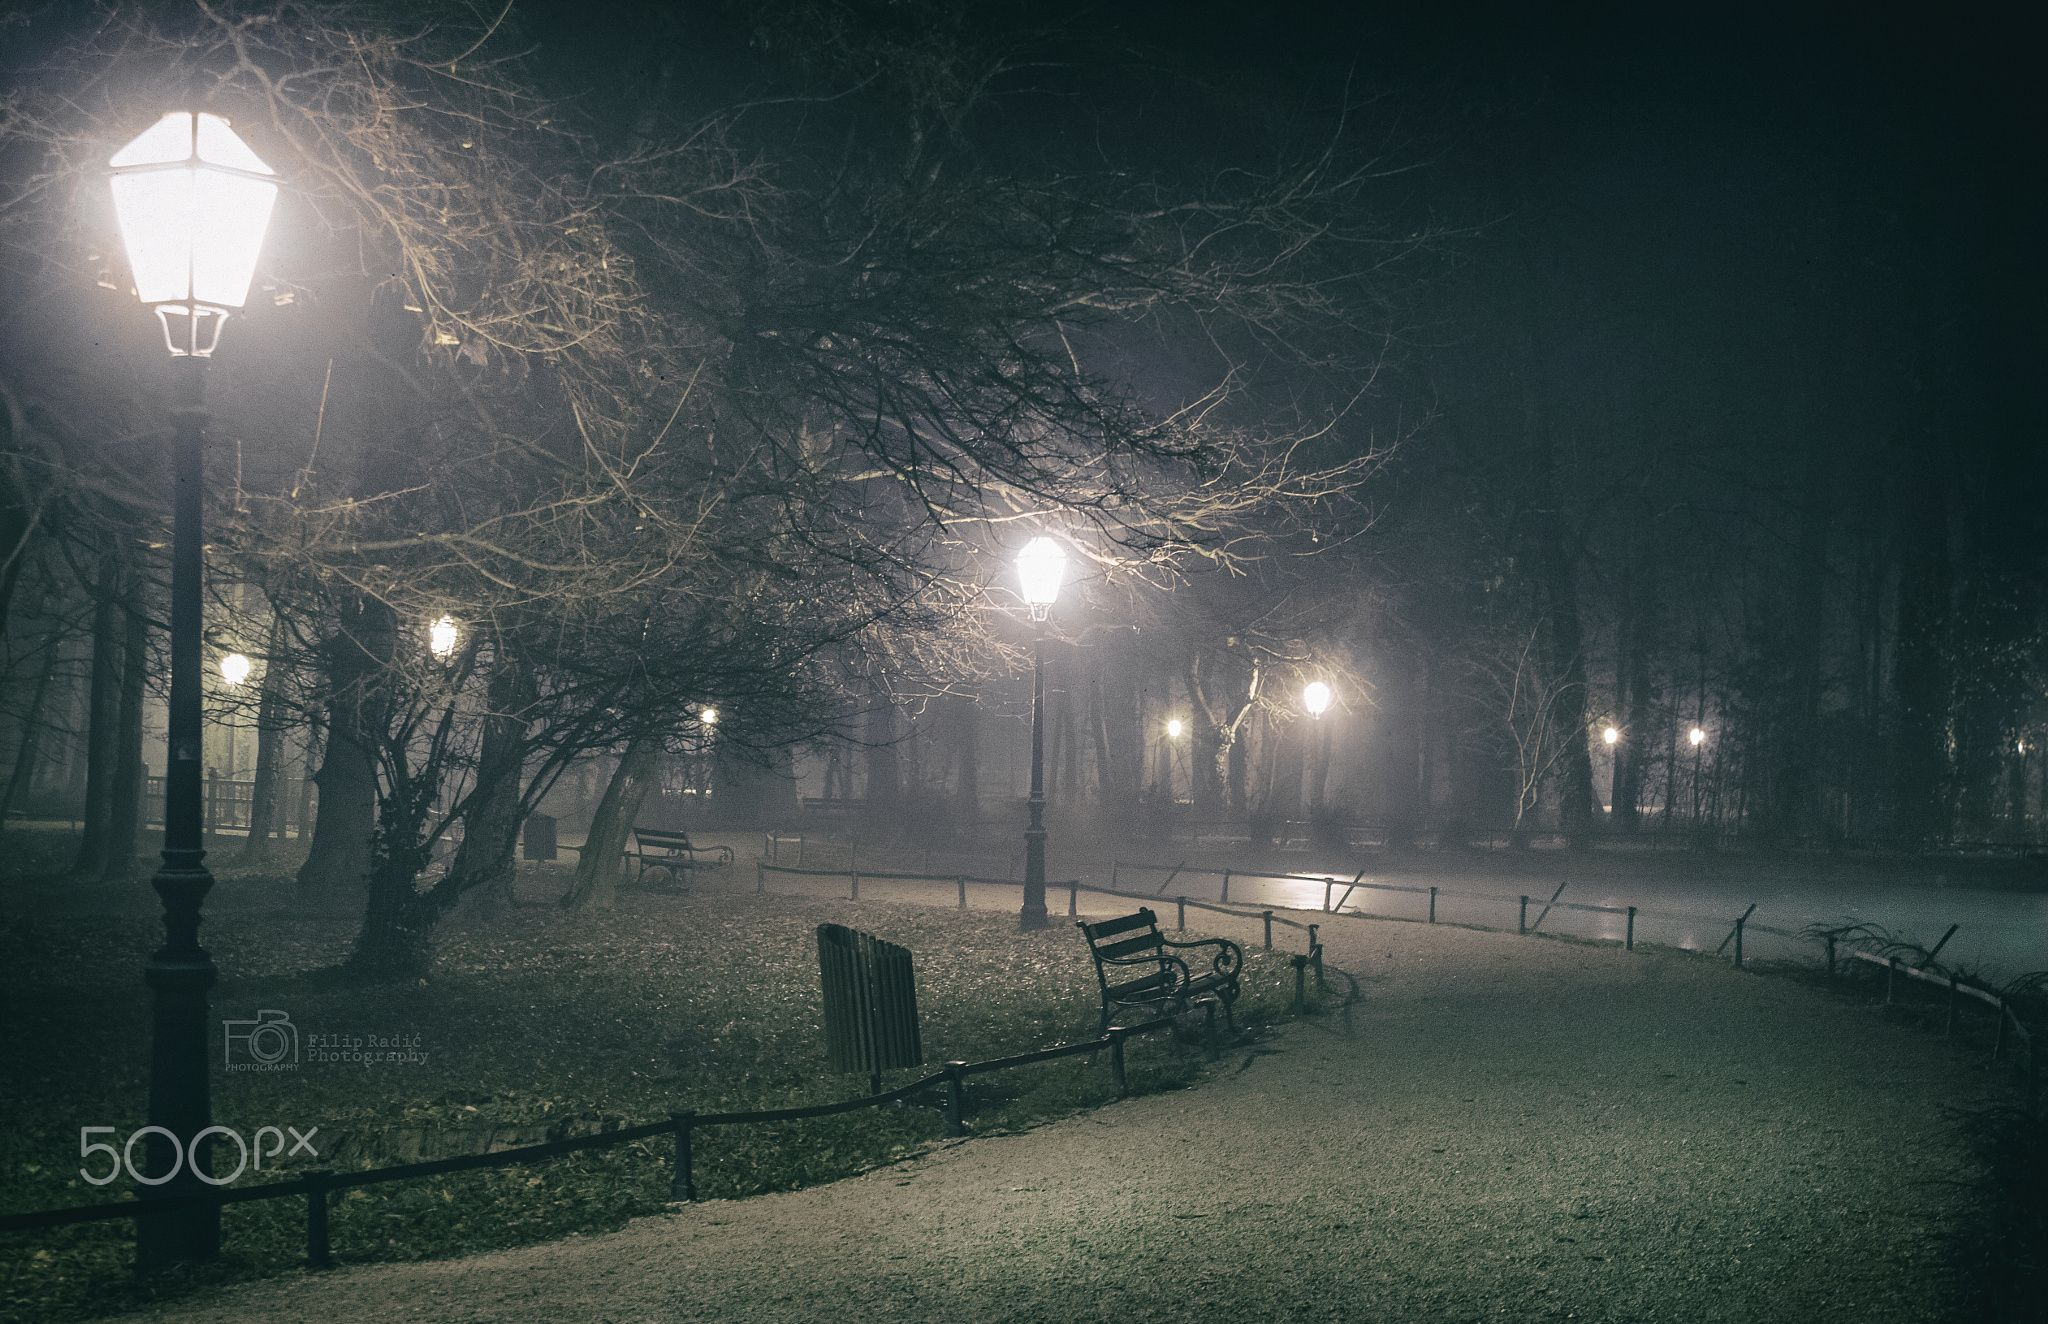 Foggy City Park Maksimir Foggy Park Maksimir Park City Foggy City